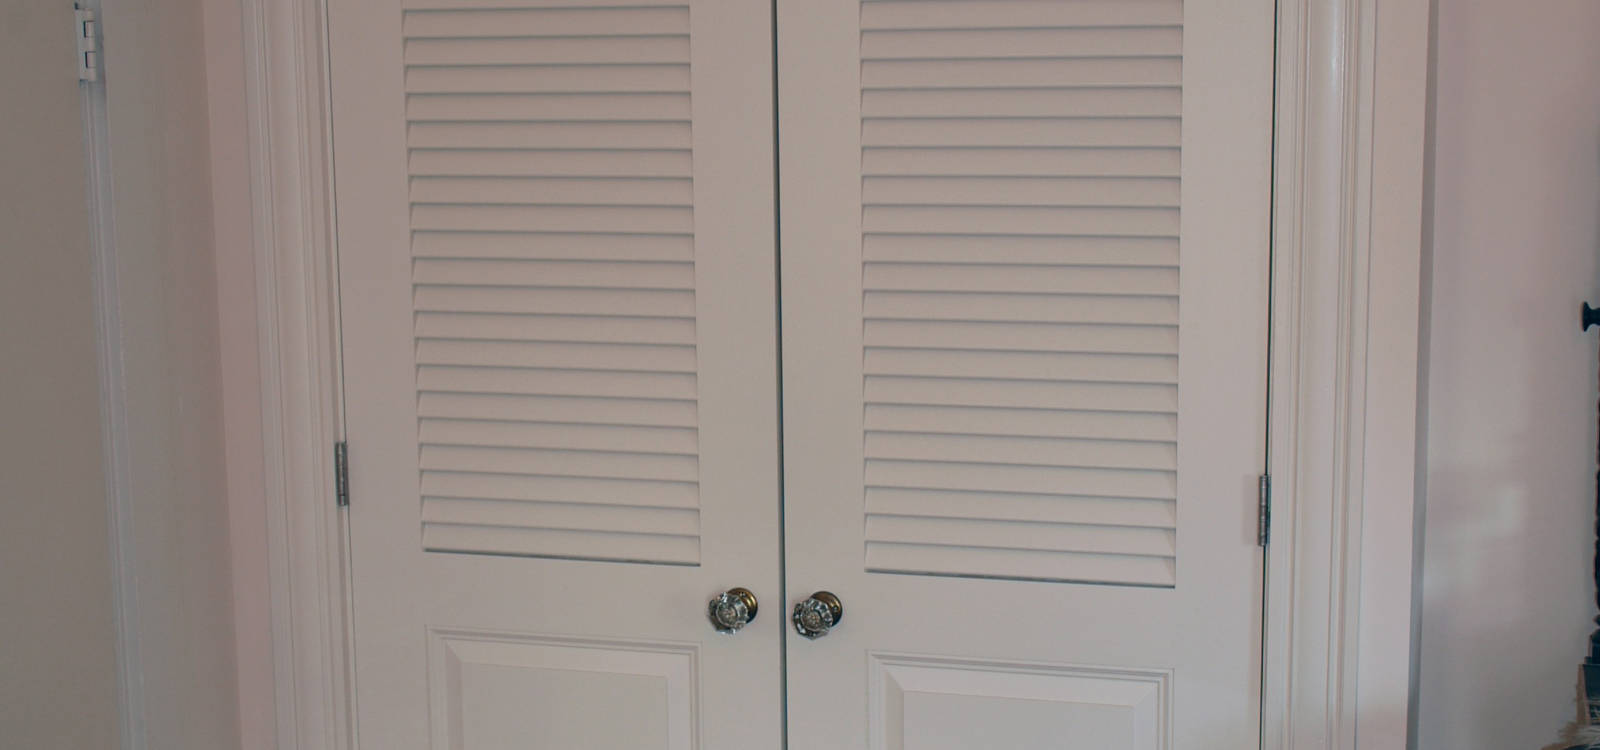 Superb ... Closet Doors Fixed Louver Over Raised Panel Doors ...